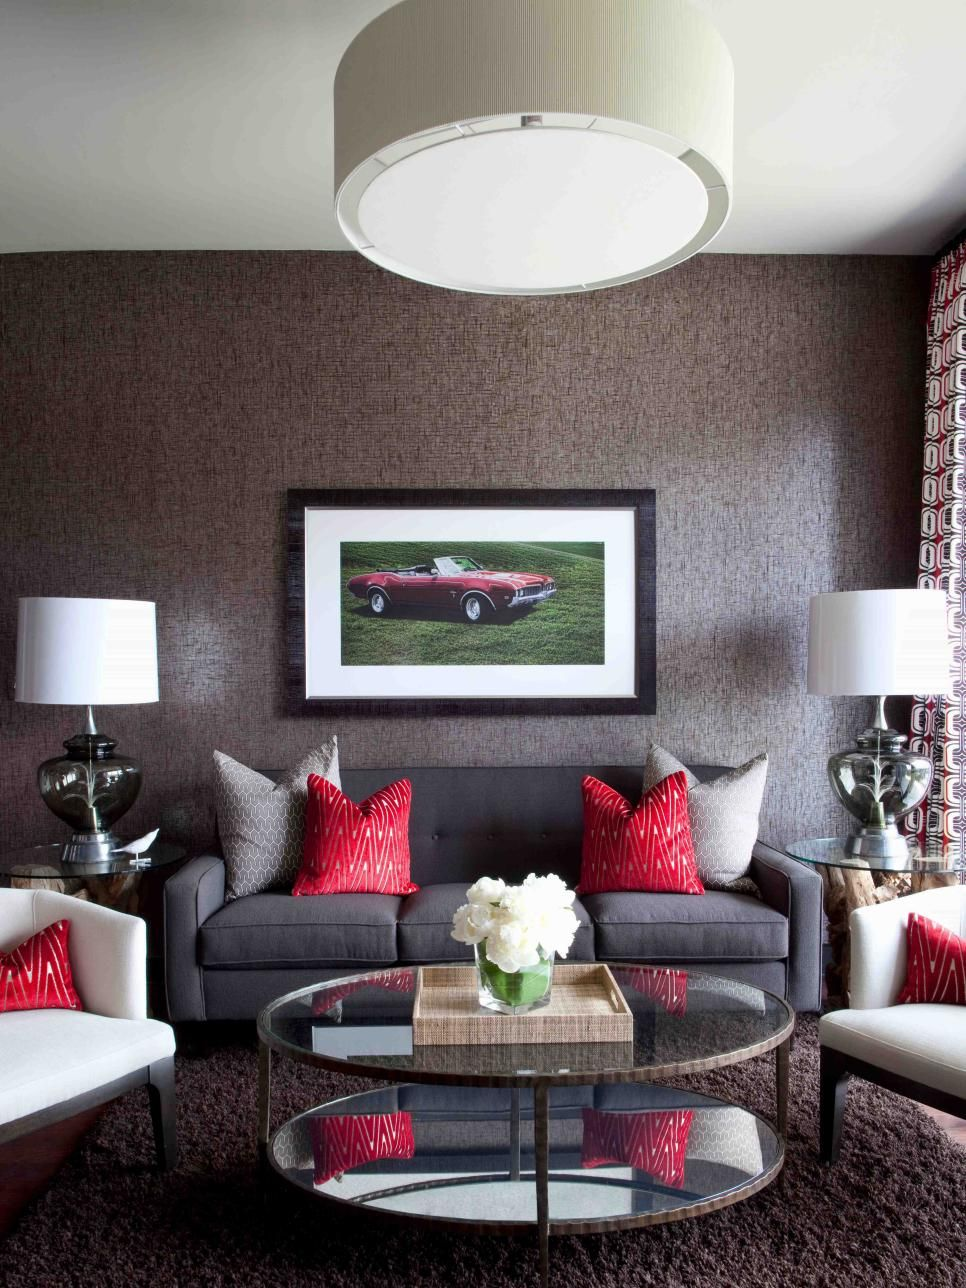 High End Bachelor Pad Decorating On A Budget Grey And Red Living Room Budget Friendly Living Room Living Room Red